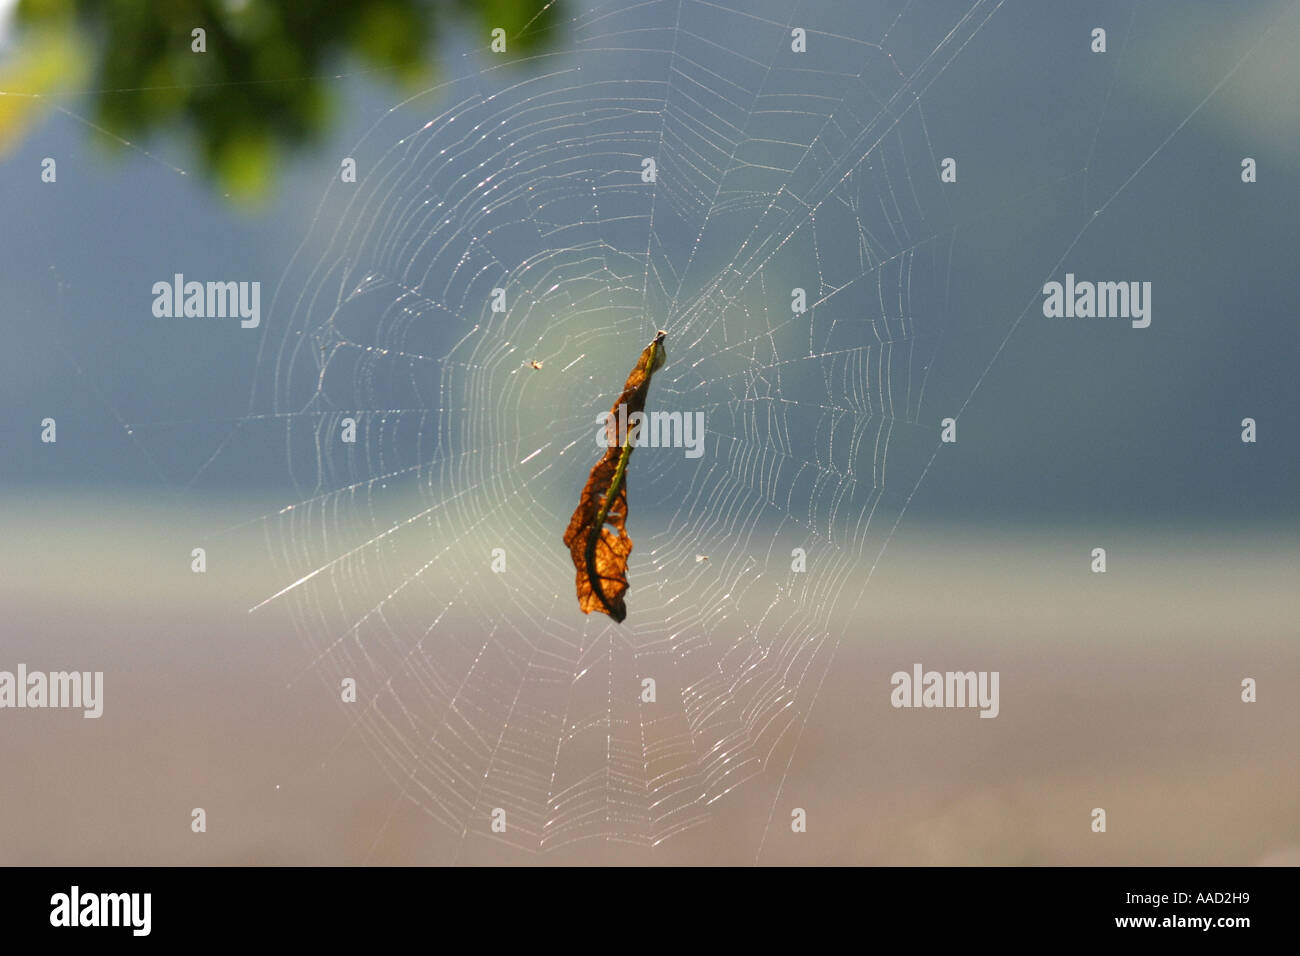 leave in a spiderweb - Stock Image